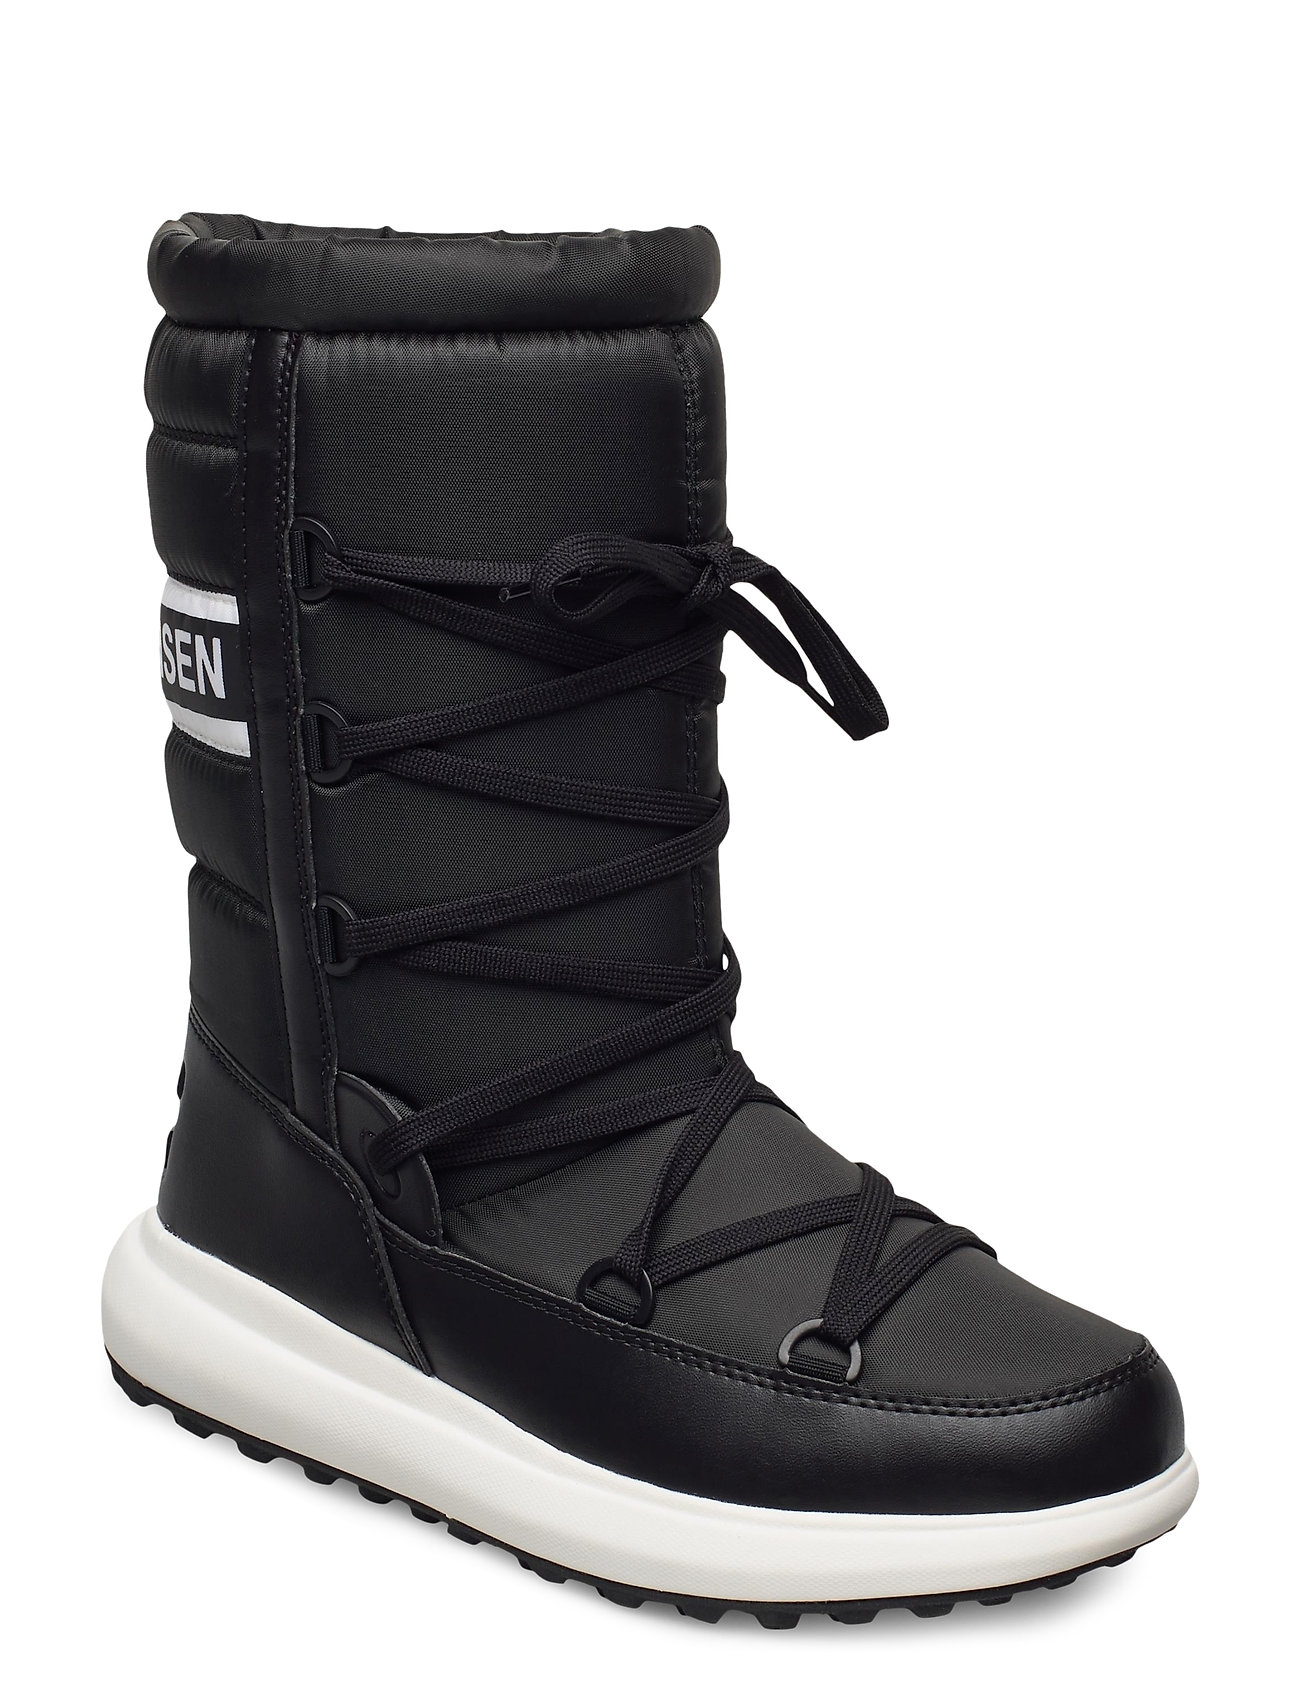 Image of W Isolabella Grand Shoes Boots Ankle Boots Ankle Boot - Flat Sort Helly Hansen (3464913543)